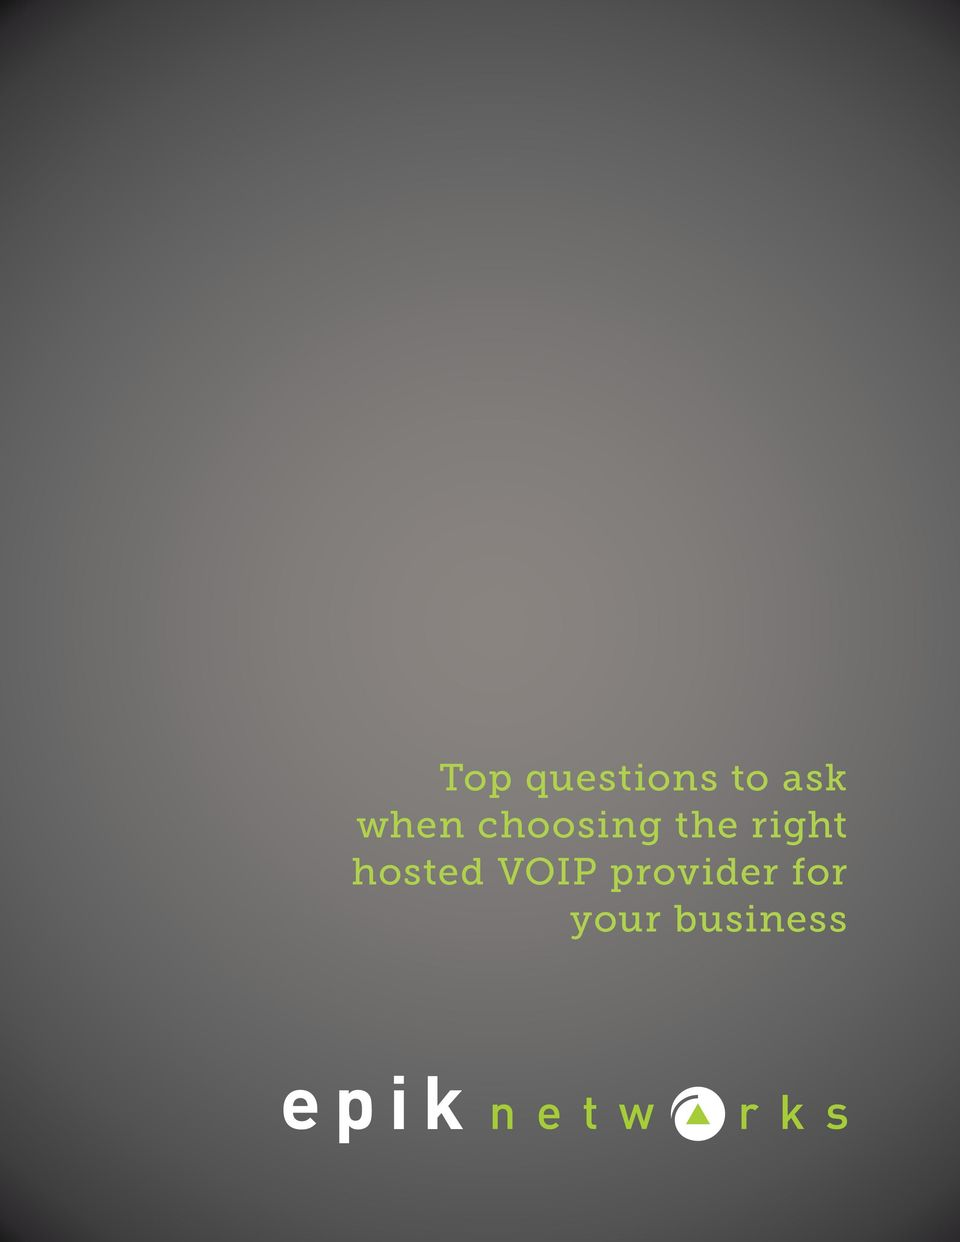 right hosted VOIP